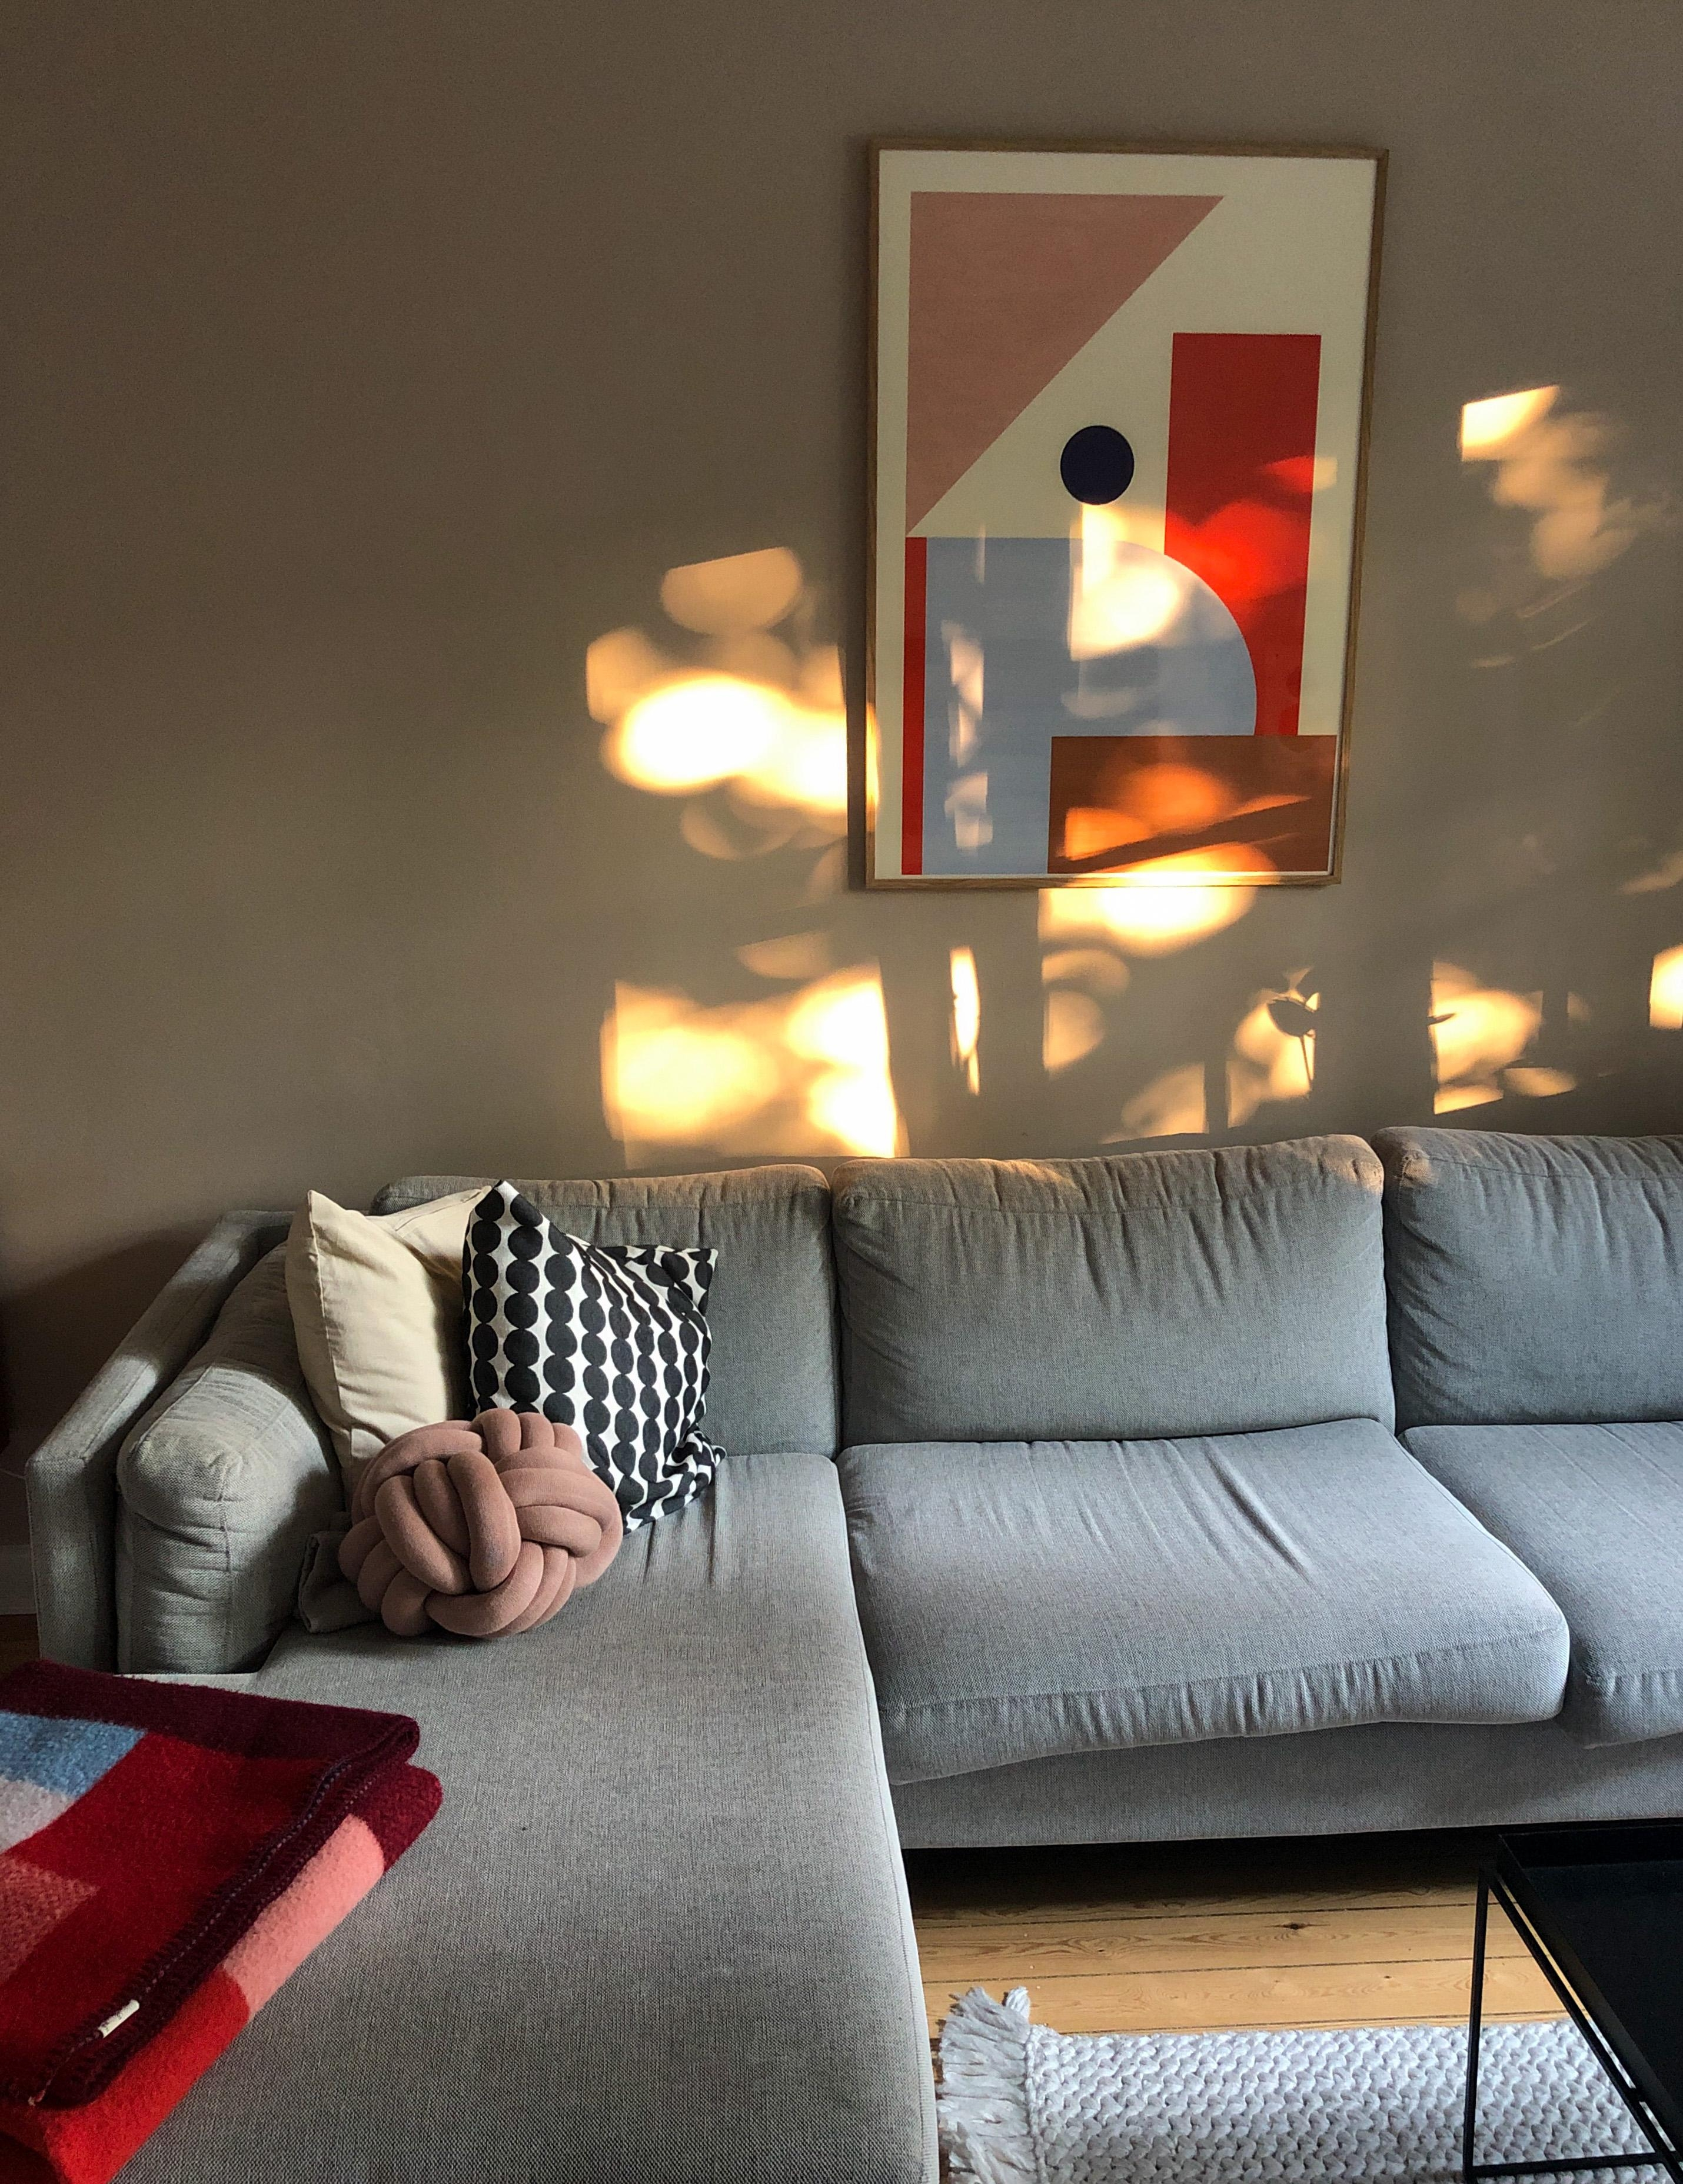 Morning lights  wohnzimmer weekendvibes sofa  be08fc4e da48 456c aaca 14f360e9a13f